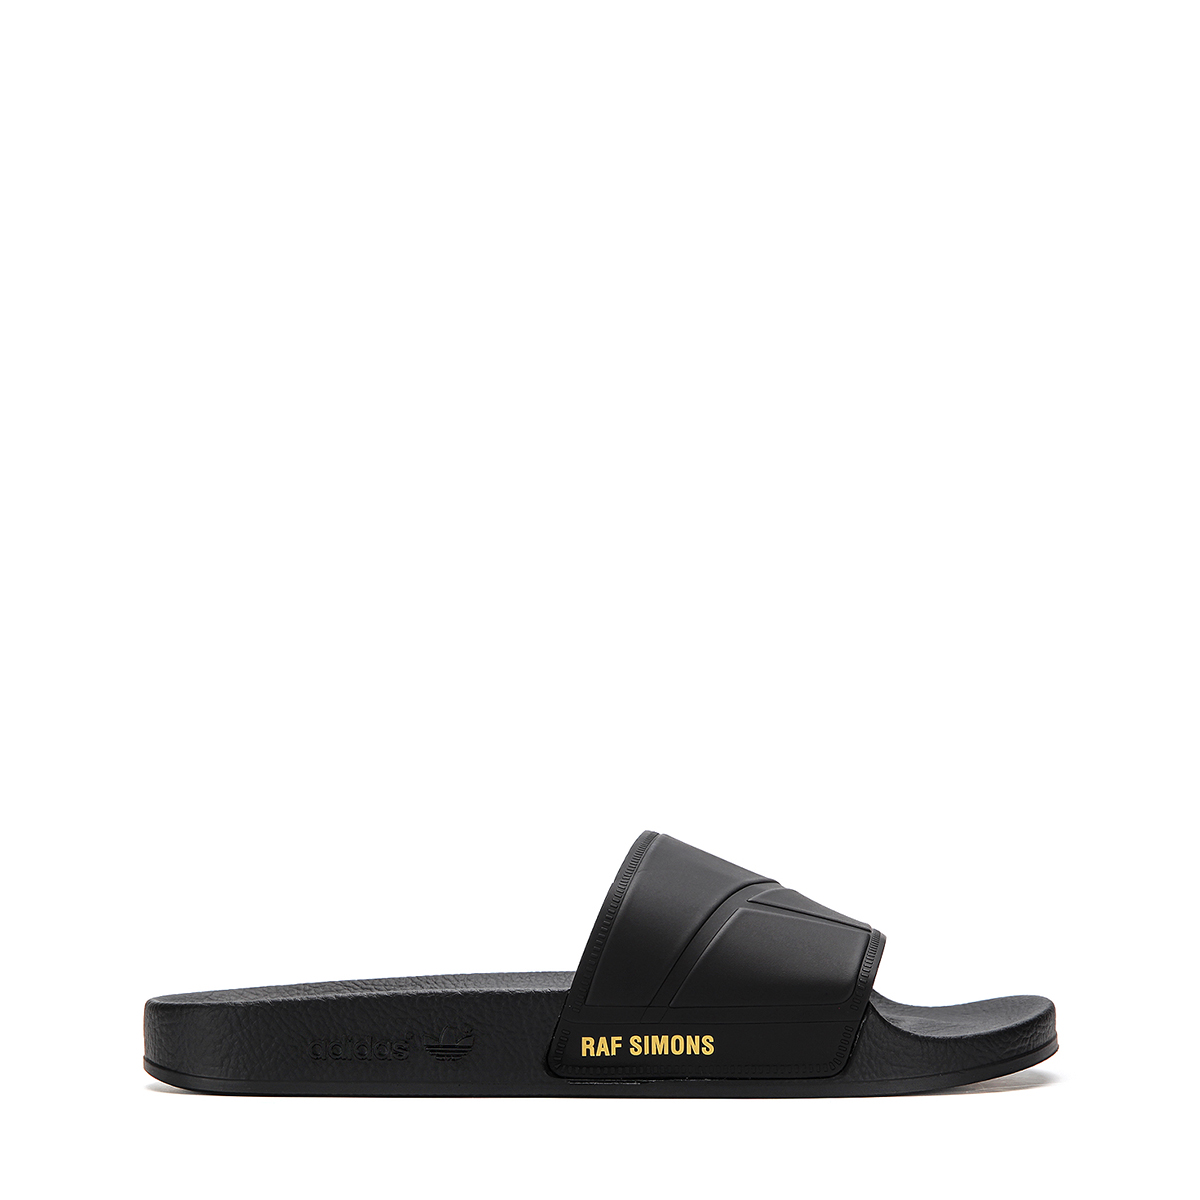 Adidas x Raf Simons Adilette Bunny Slide Sandals BY9813 Core Black by